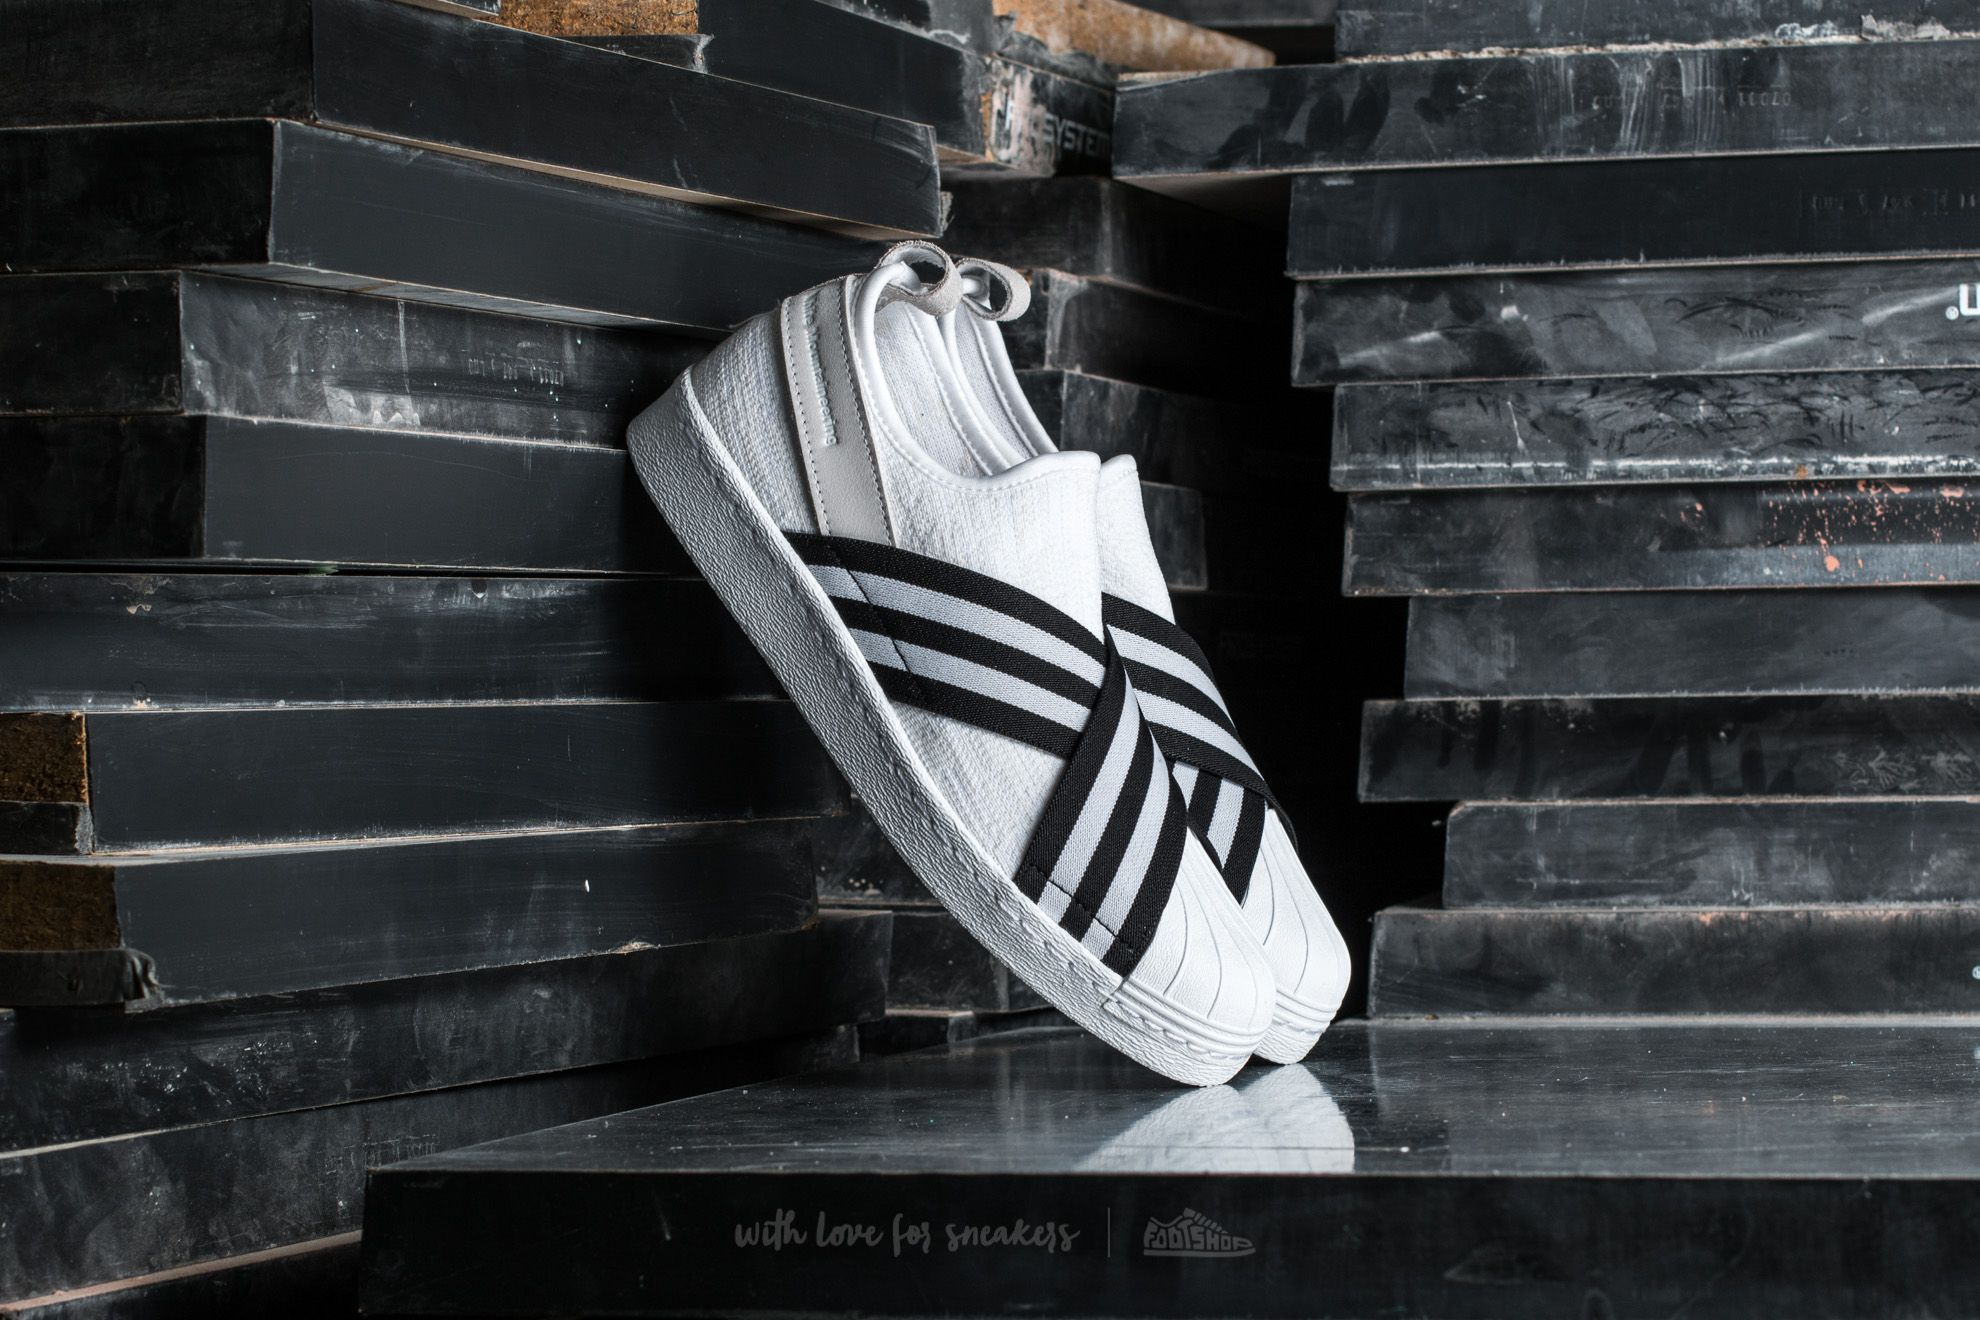 ab9339362c44 adidas Consortium x White Mountaineering Superstar Slip On Primeknit  Footwear White  Core Black  Footwear